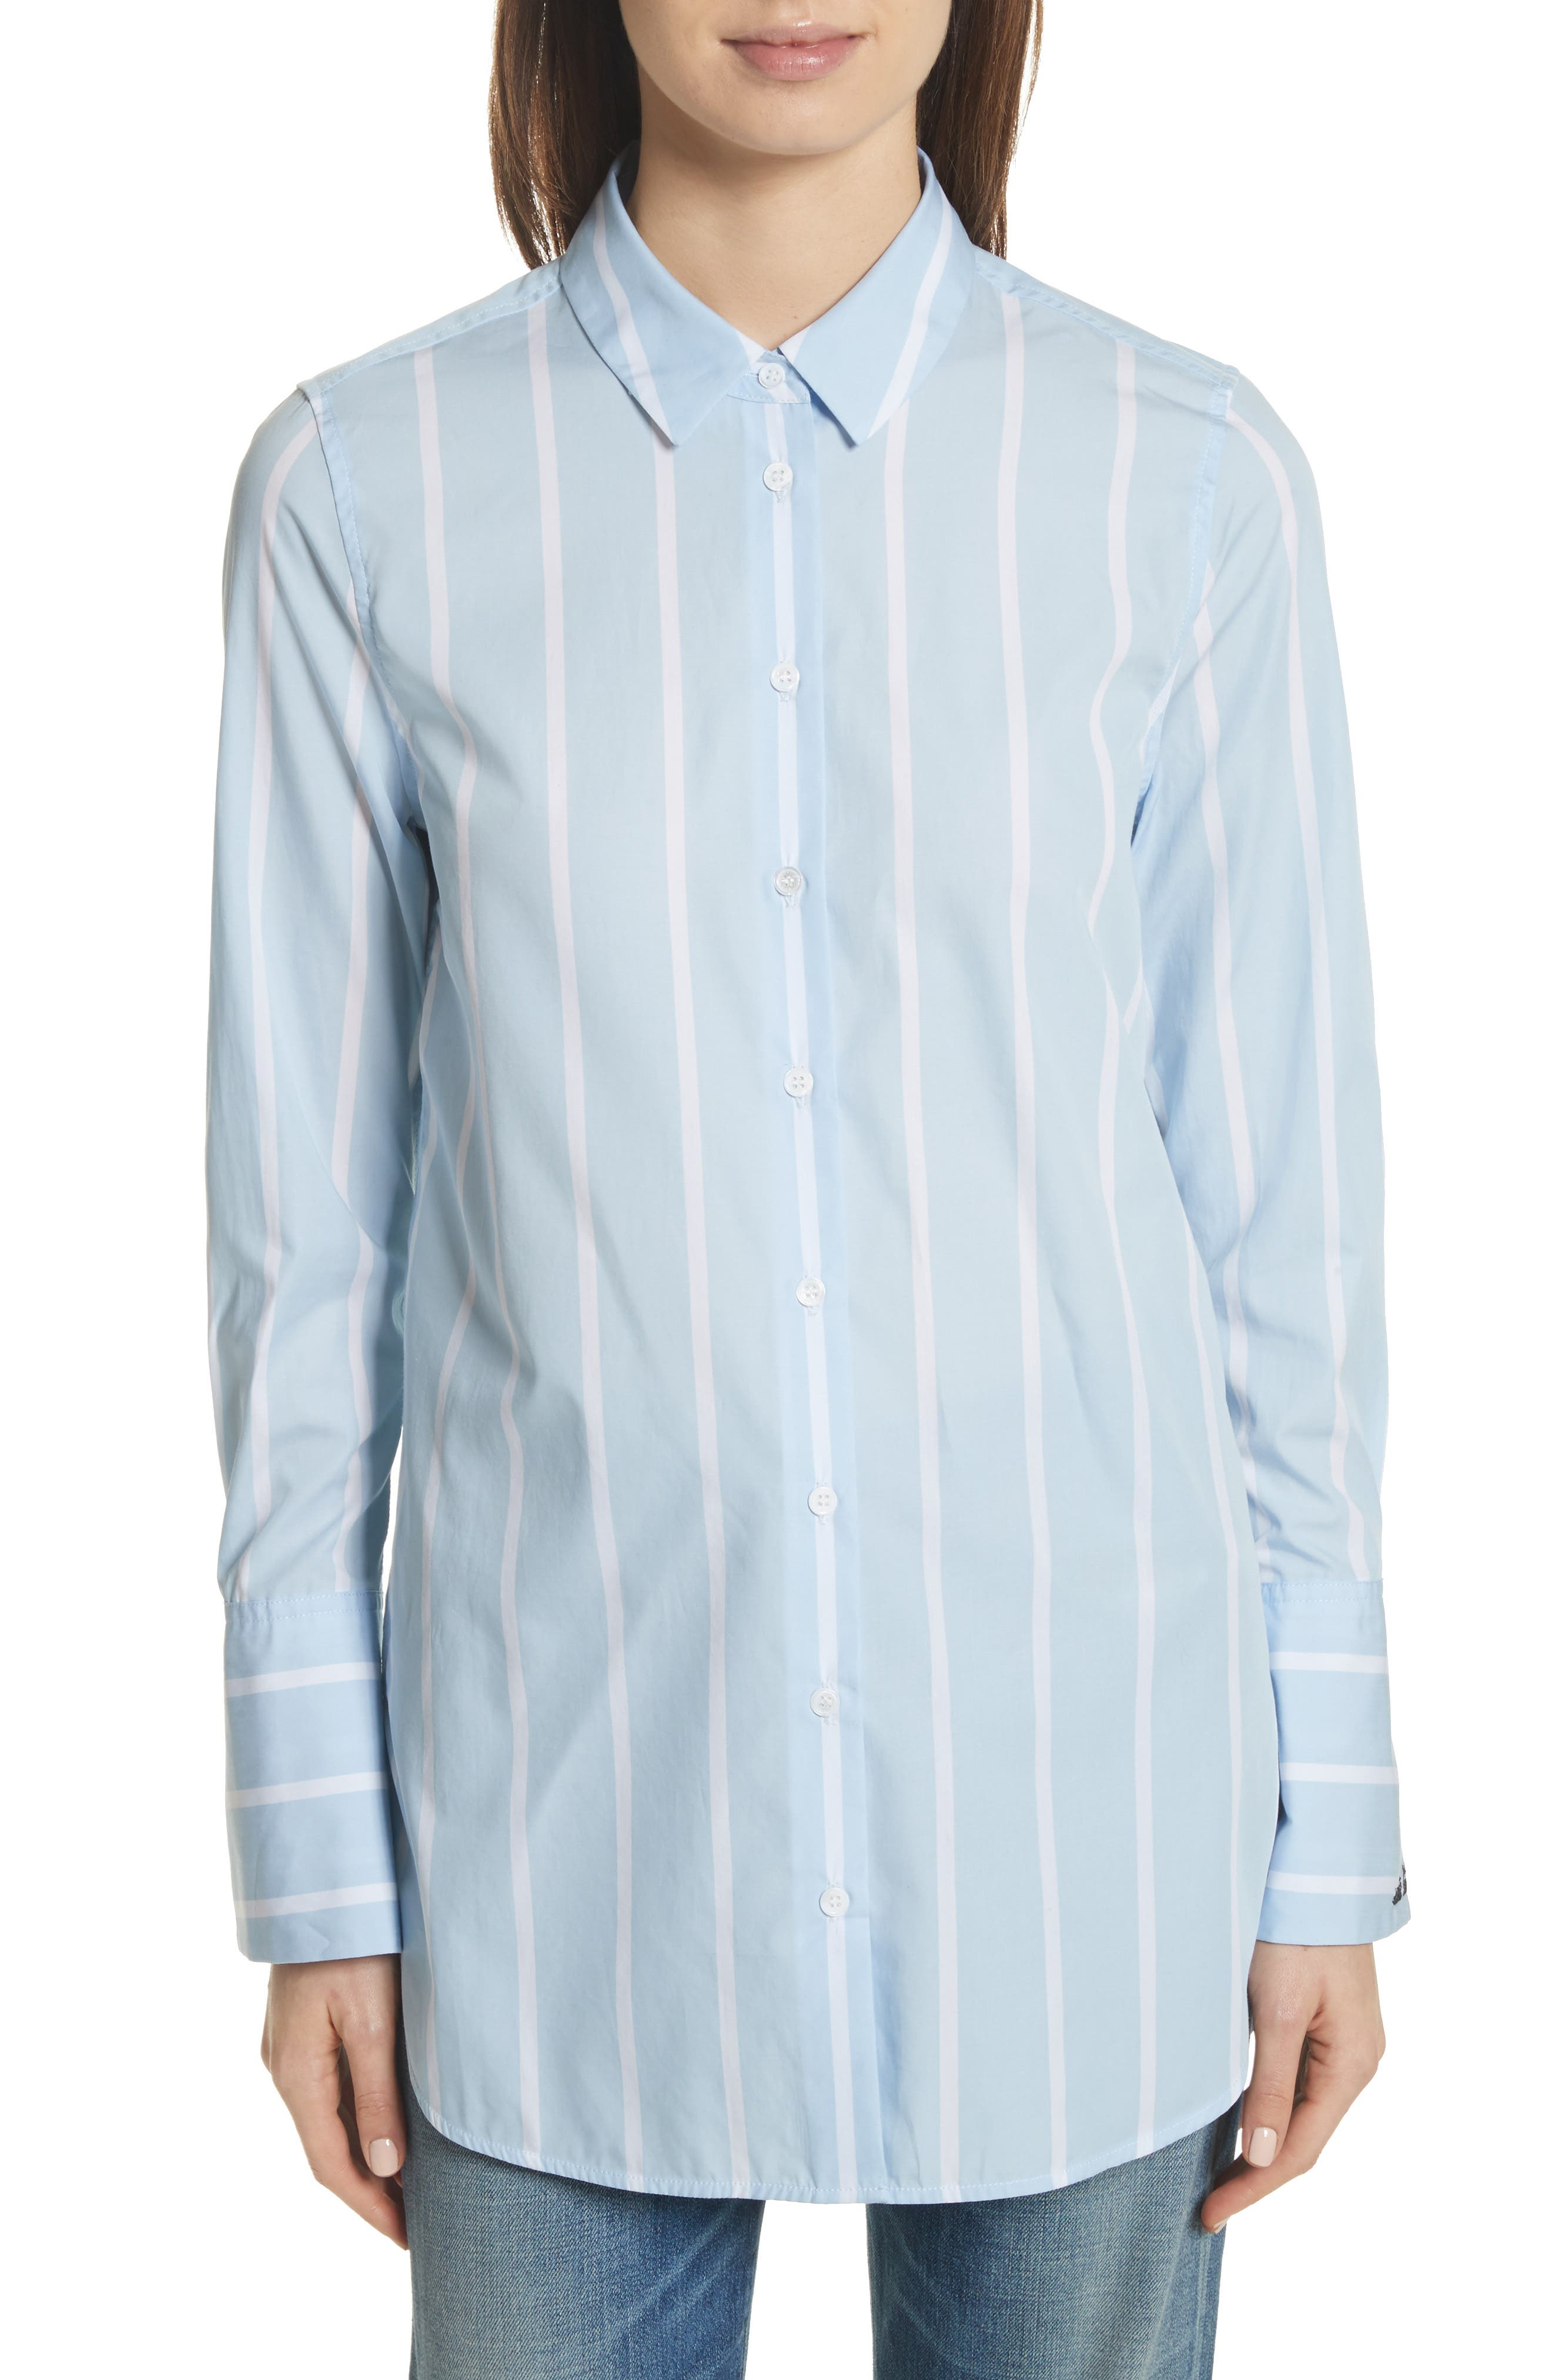 Alternate Image 1 Selected - Equipment Arlette Stripe Cotton Shirt